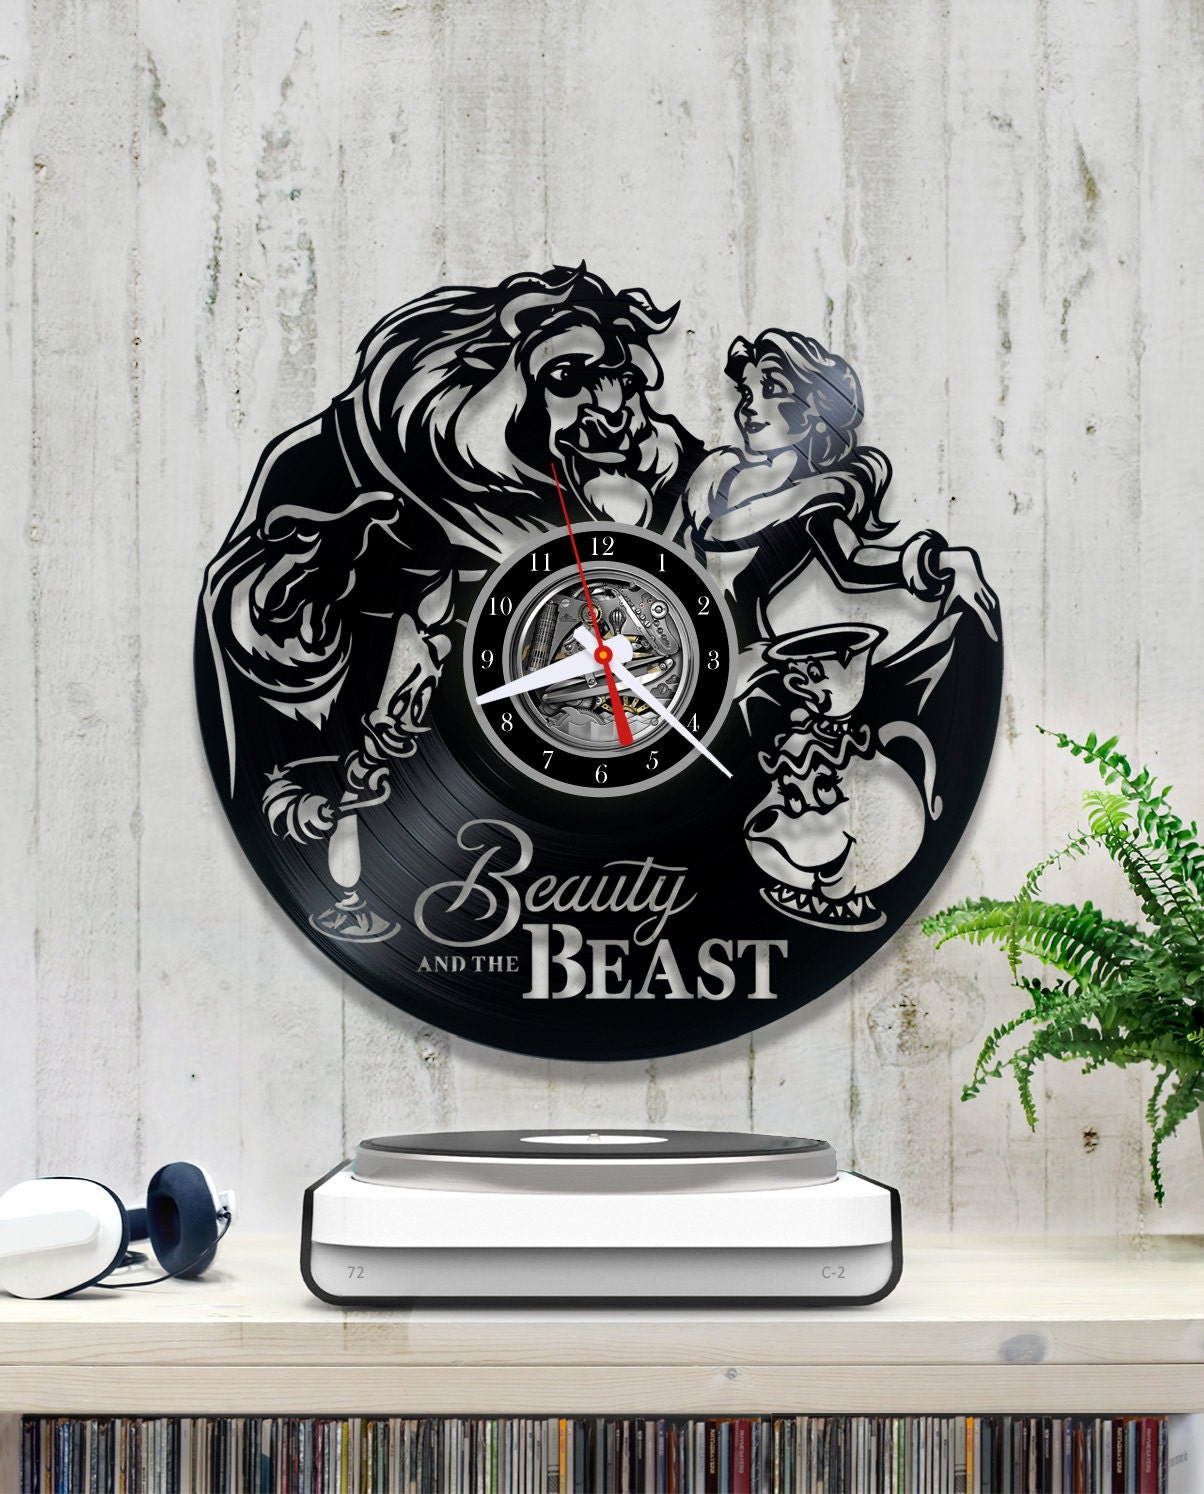 Beauty And The Beast Unique Couple Tattoos: Beauty And The Beast Vinyl Clock Disney Record Unique Wall